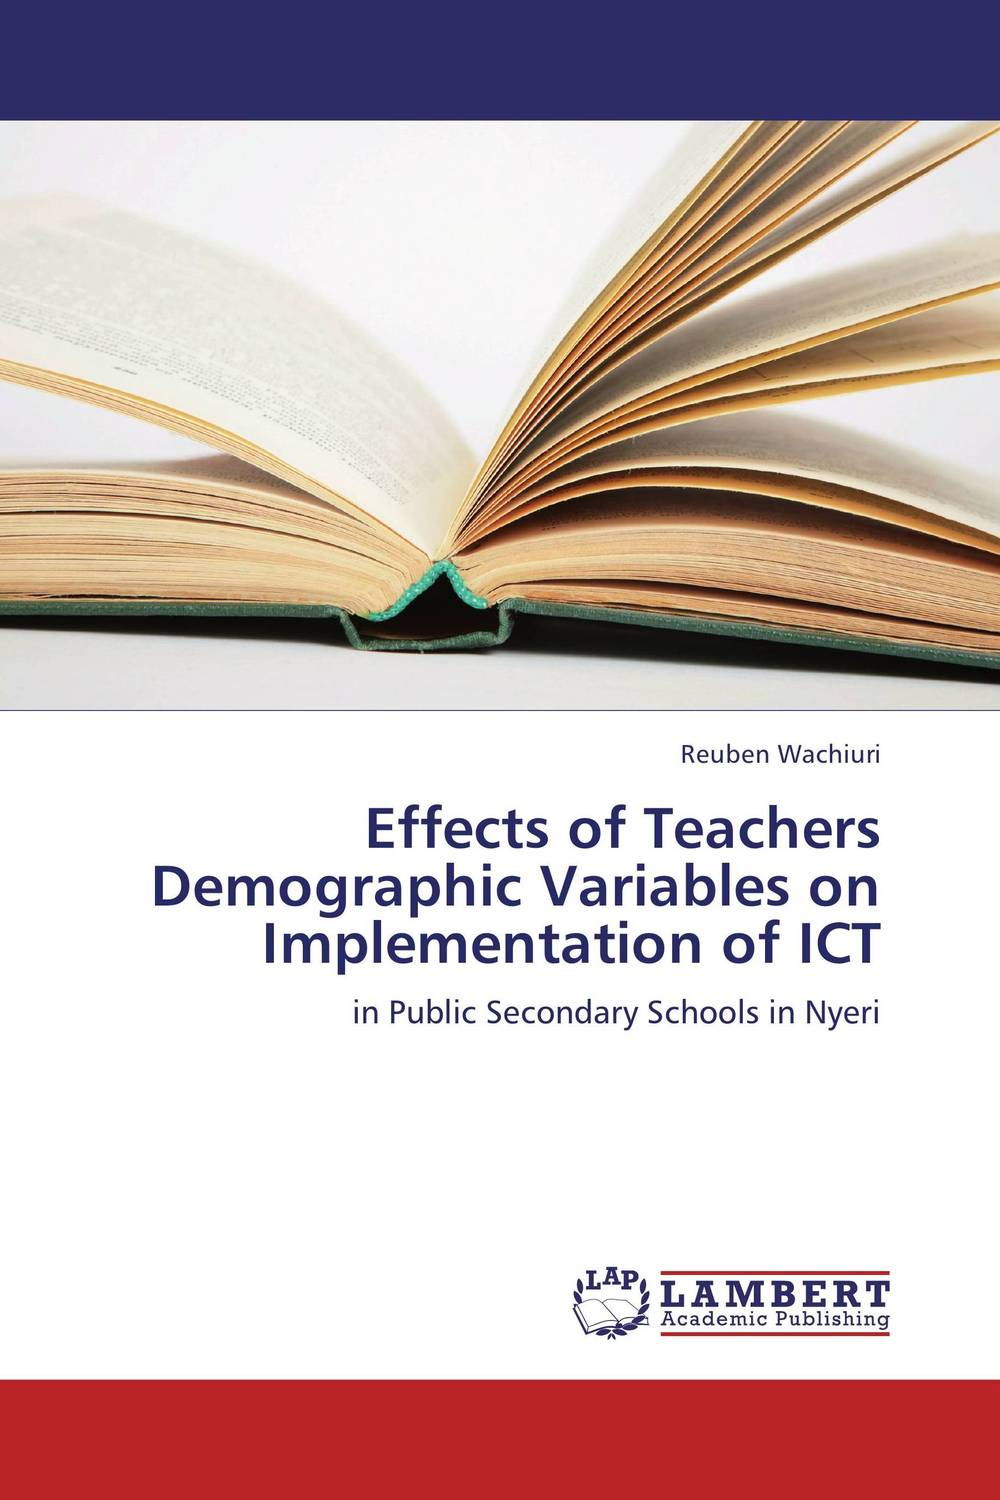 Effects of Teachers Demographic Variables on Implementation of ICT